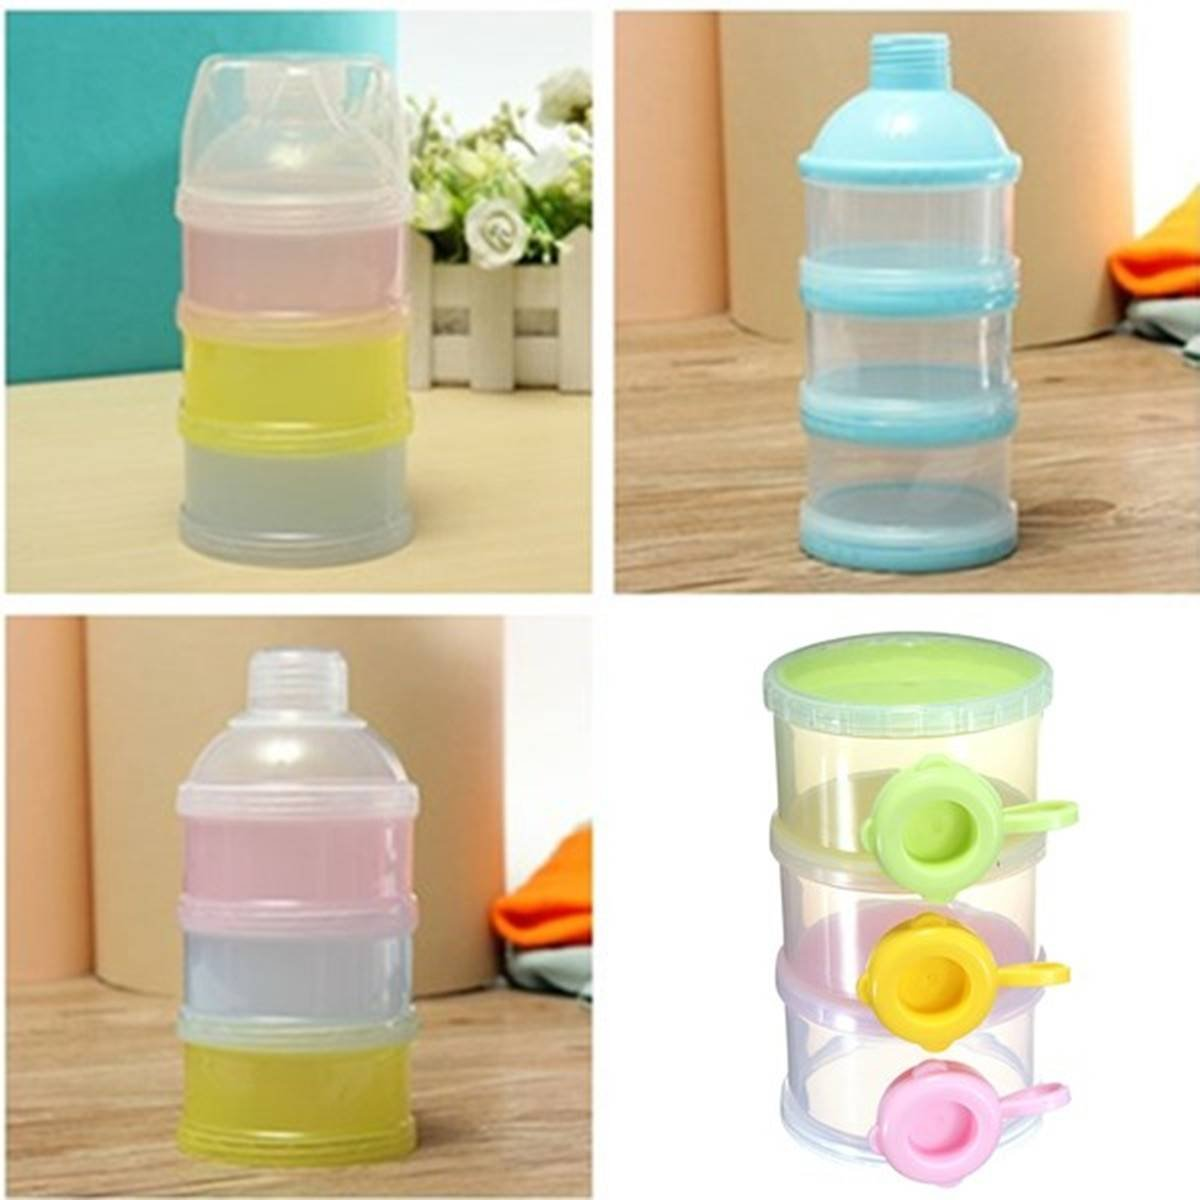 Bazaar Random Color 3 Layer Baby Milk Feed Powder Dispenser Container Compartment Travel Bottle Storage Box Big Bazaar